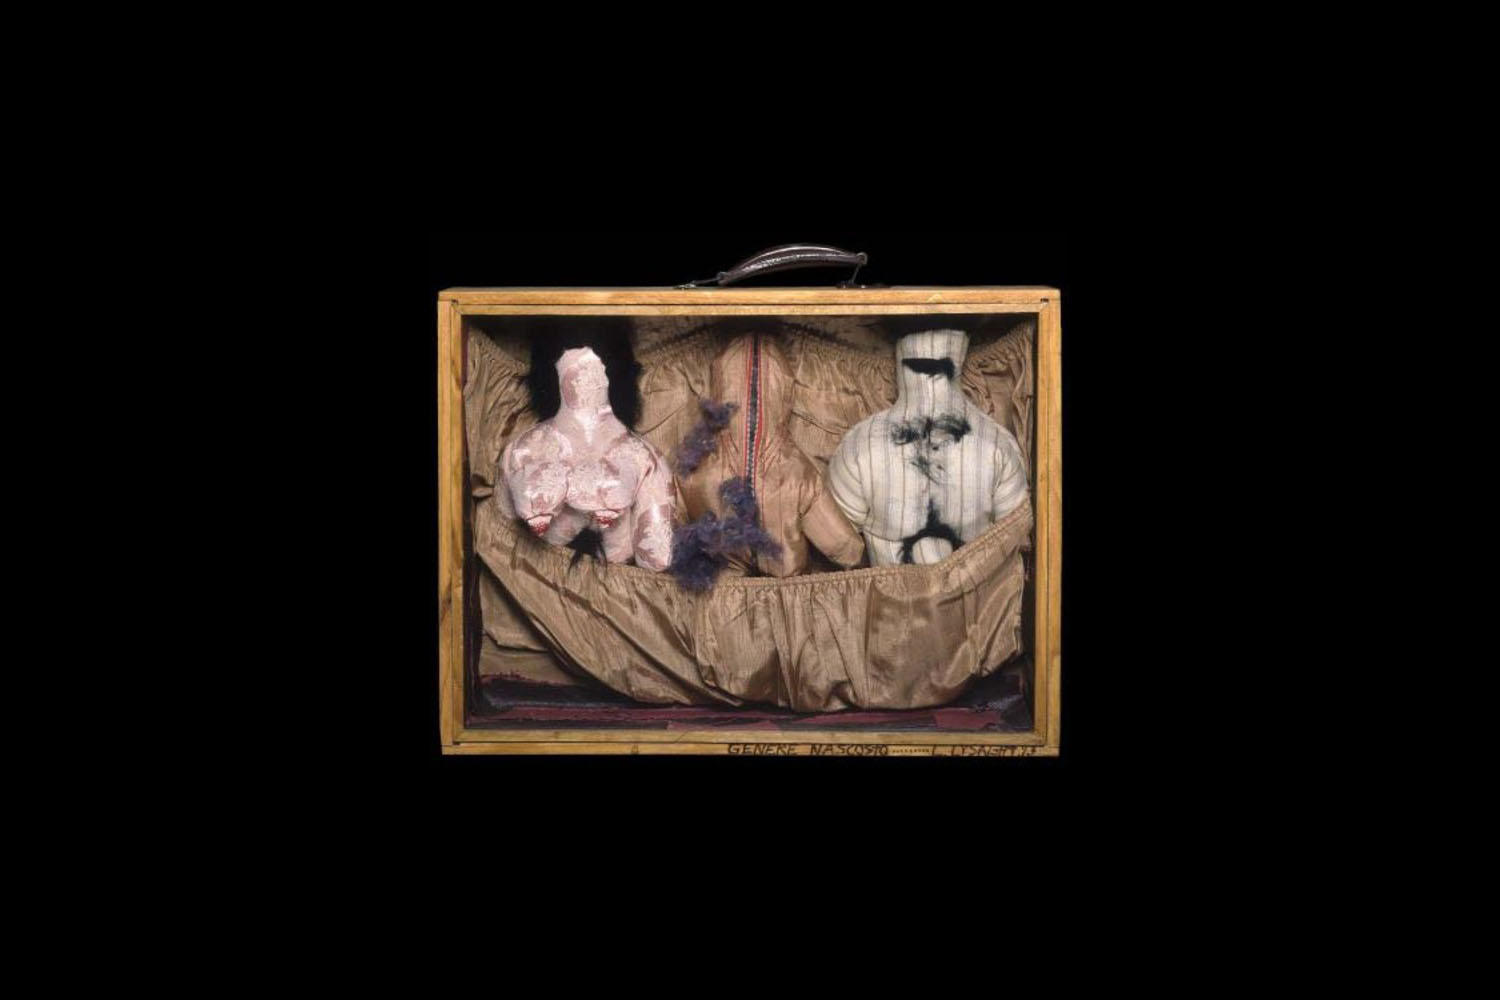 Wooden suitcase frame contains sewn naked male and female dolls